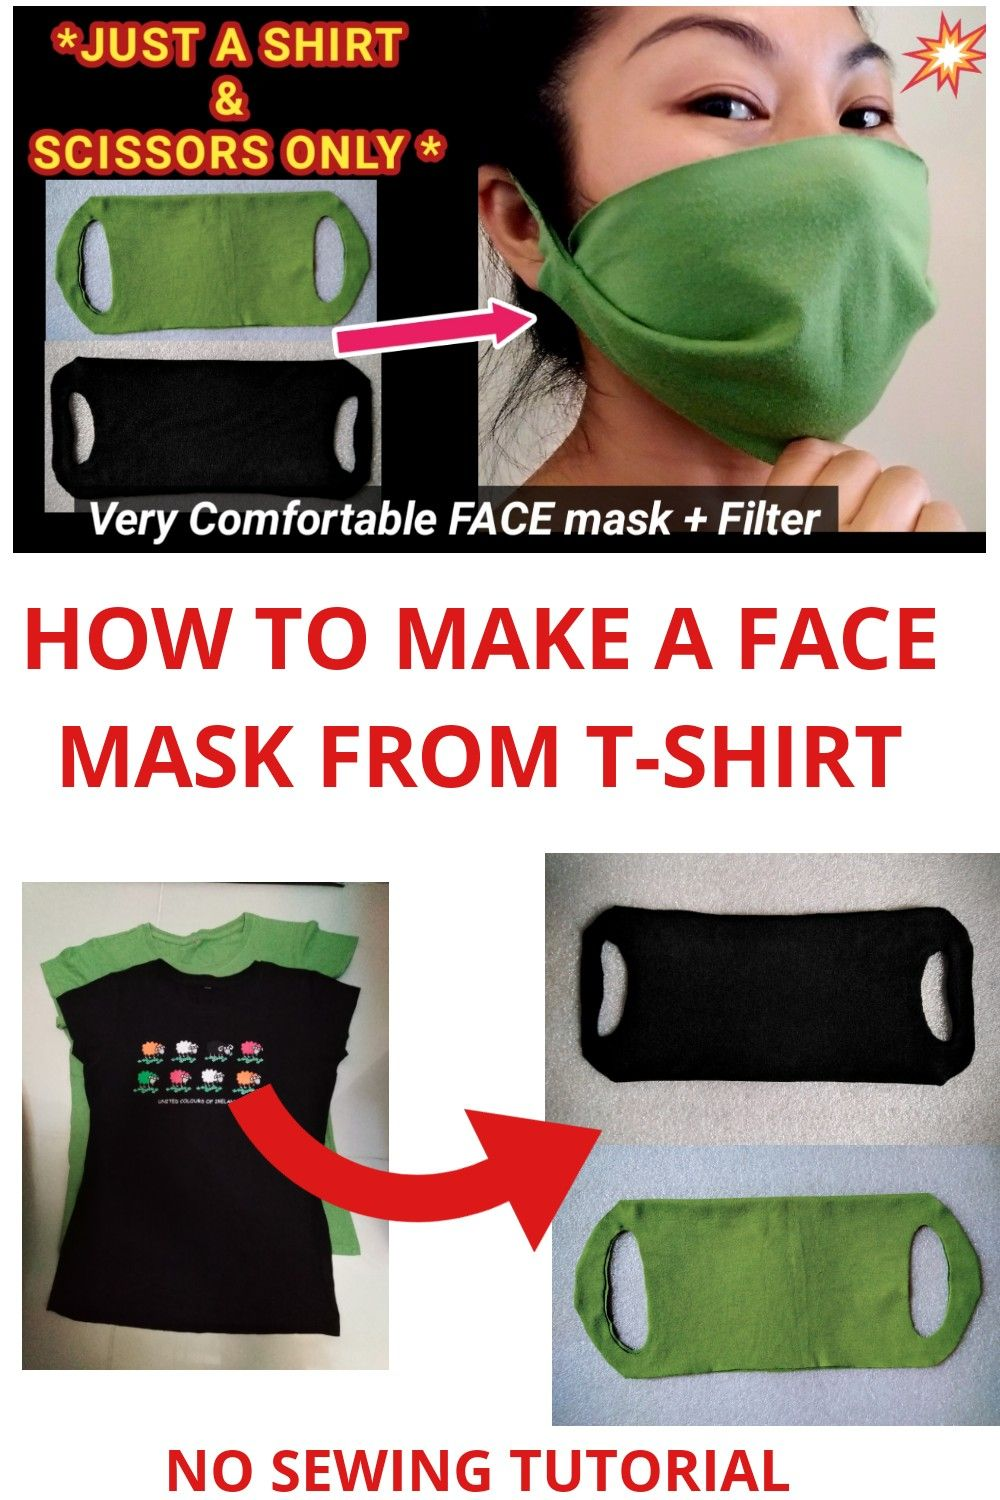 ️ NO SEW FACE MASK FROM TSHIRT WITH FILTER POCKET. DIY